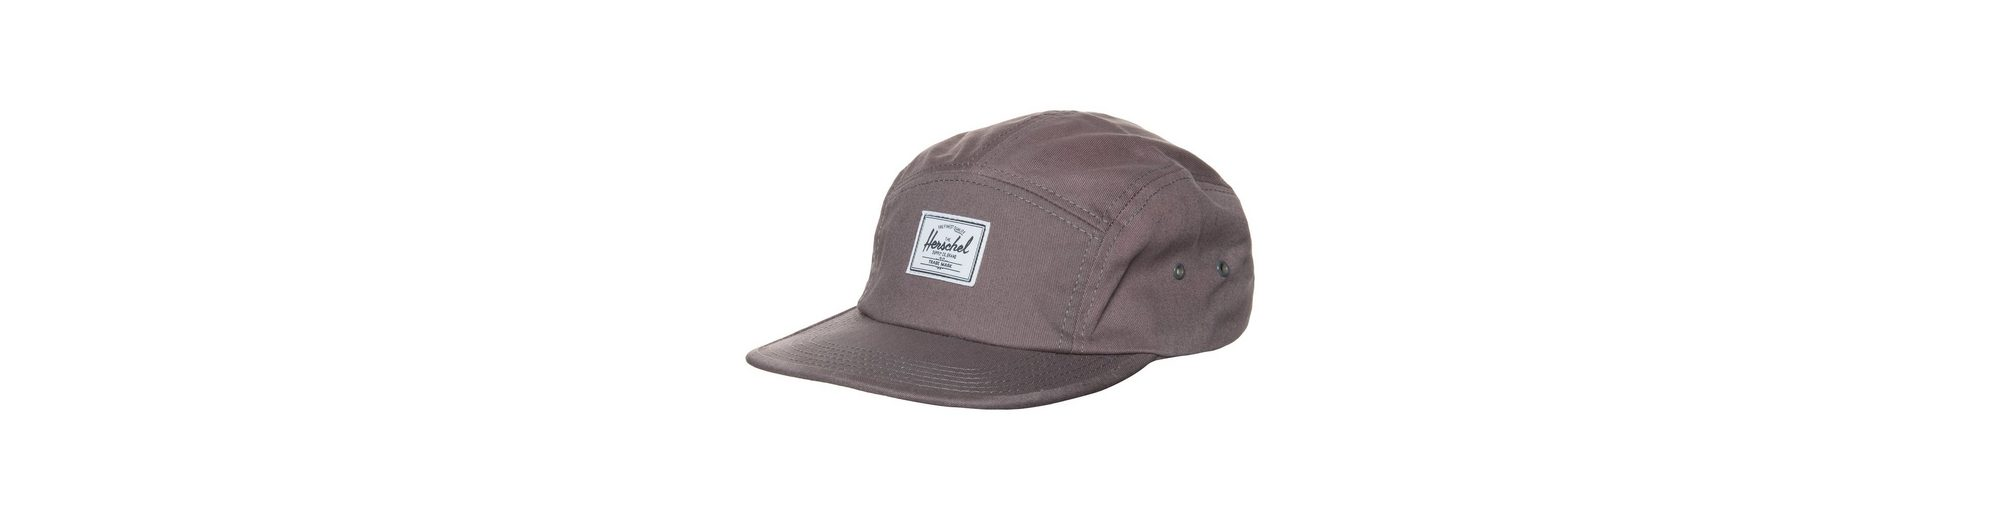 Herschel Glendale Five Panel Cap